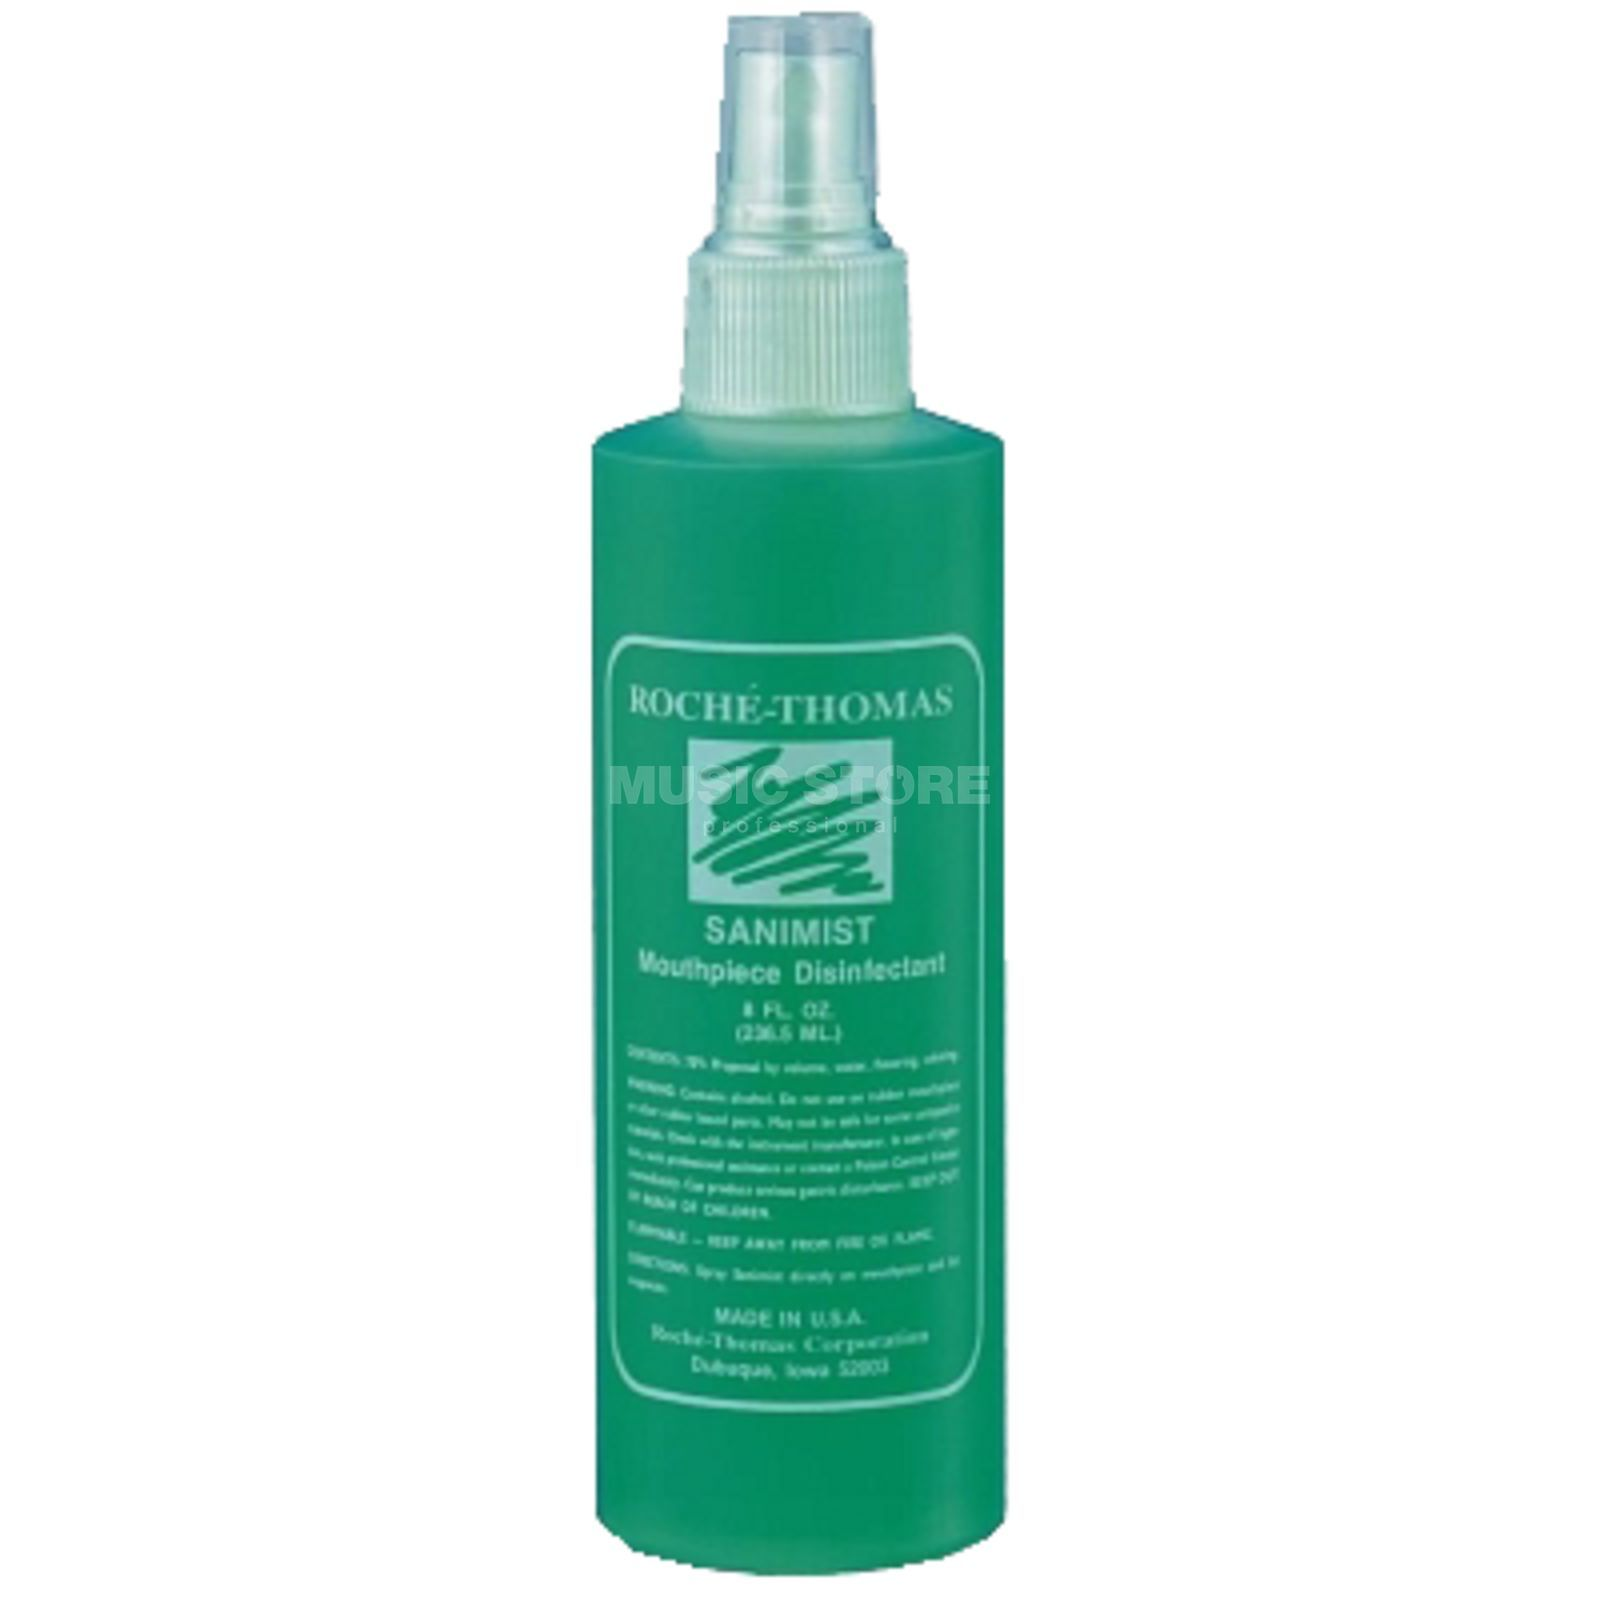 ROCHÉ-THOMAS Cleaning and Disinefectant Spray 235ml (100ml = 5.32Ç) Product Image